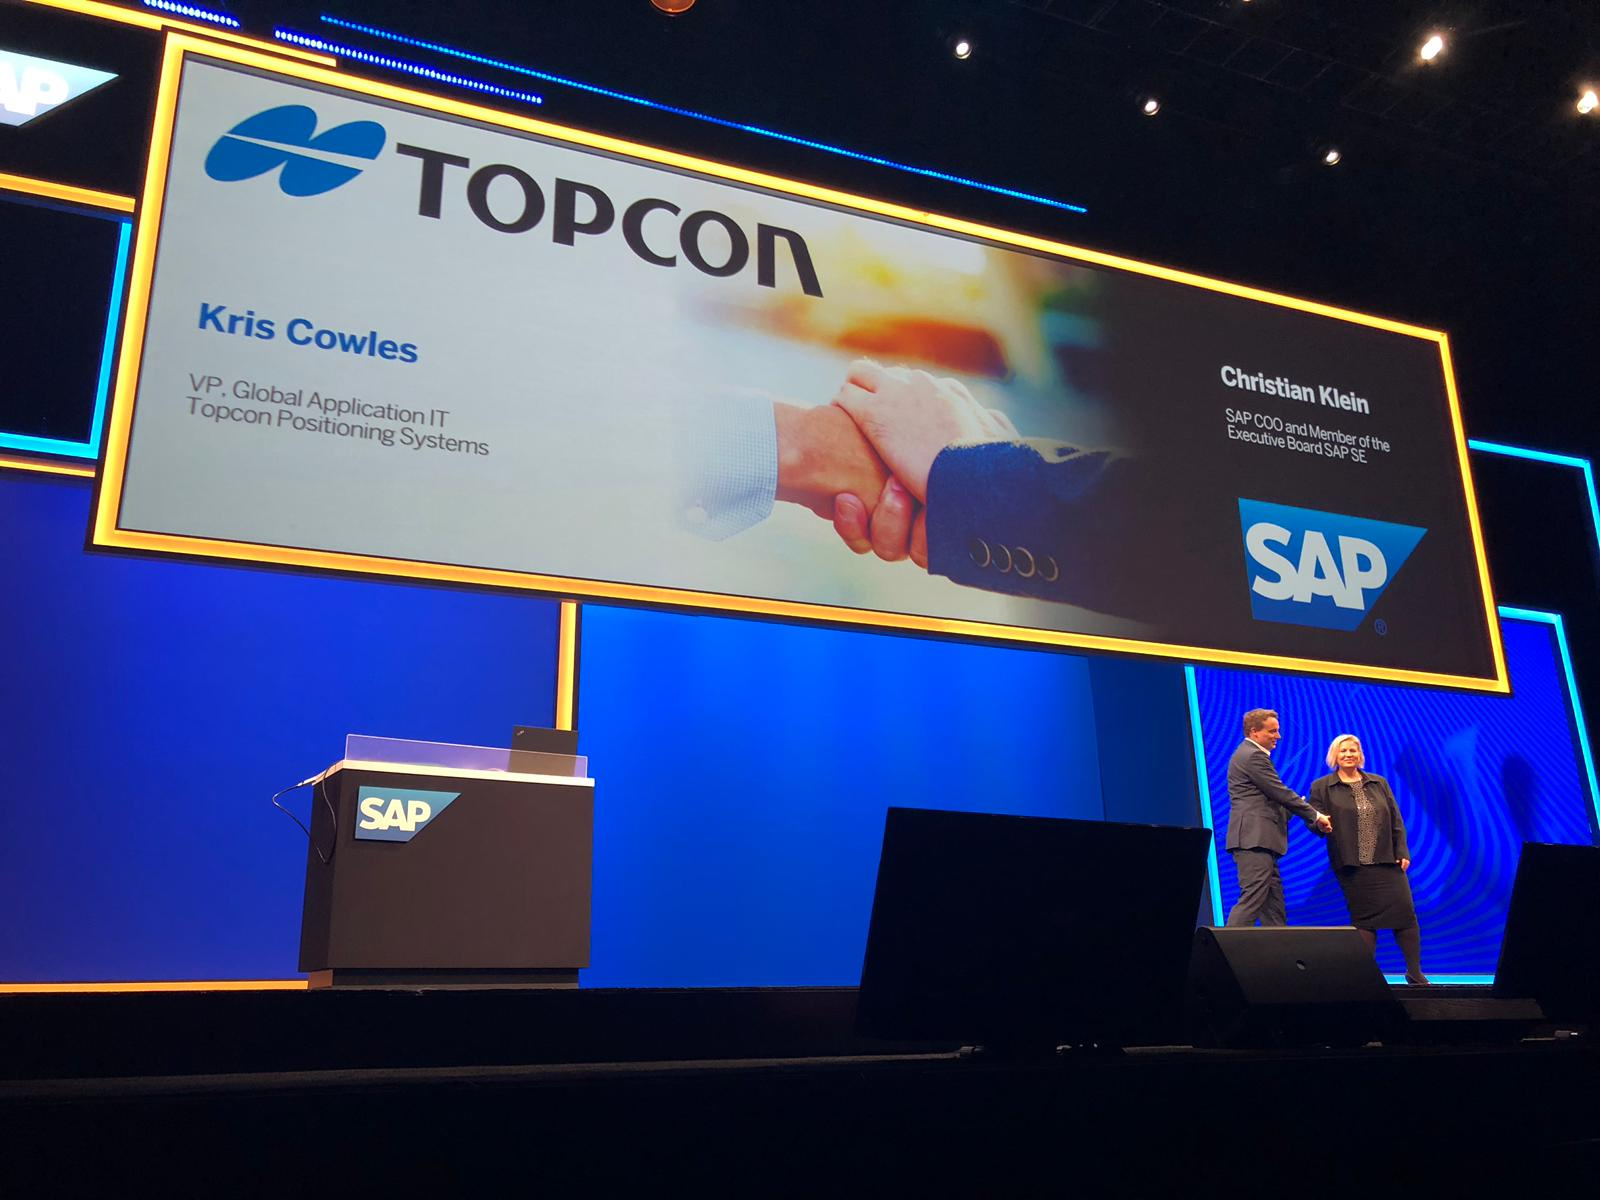 Topcon Featured in Keynote Presentation at SAP Conference | Business